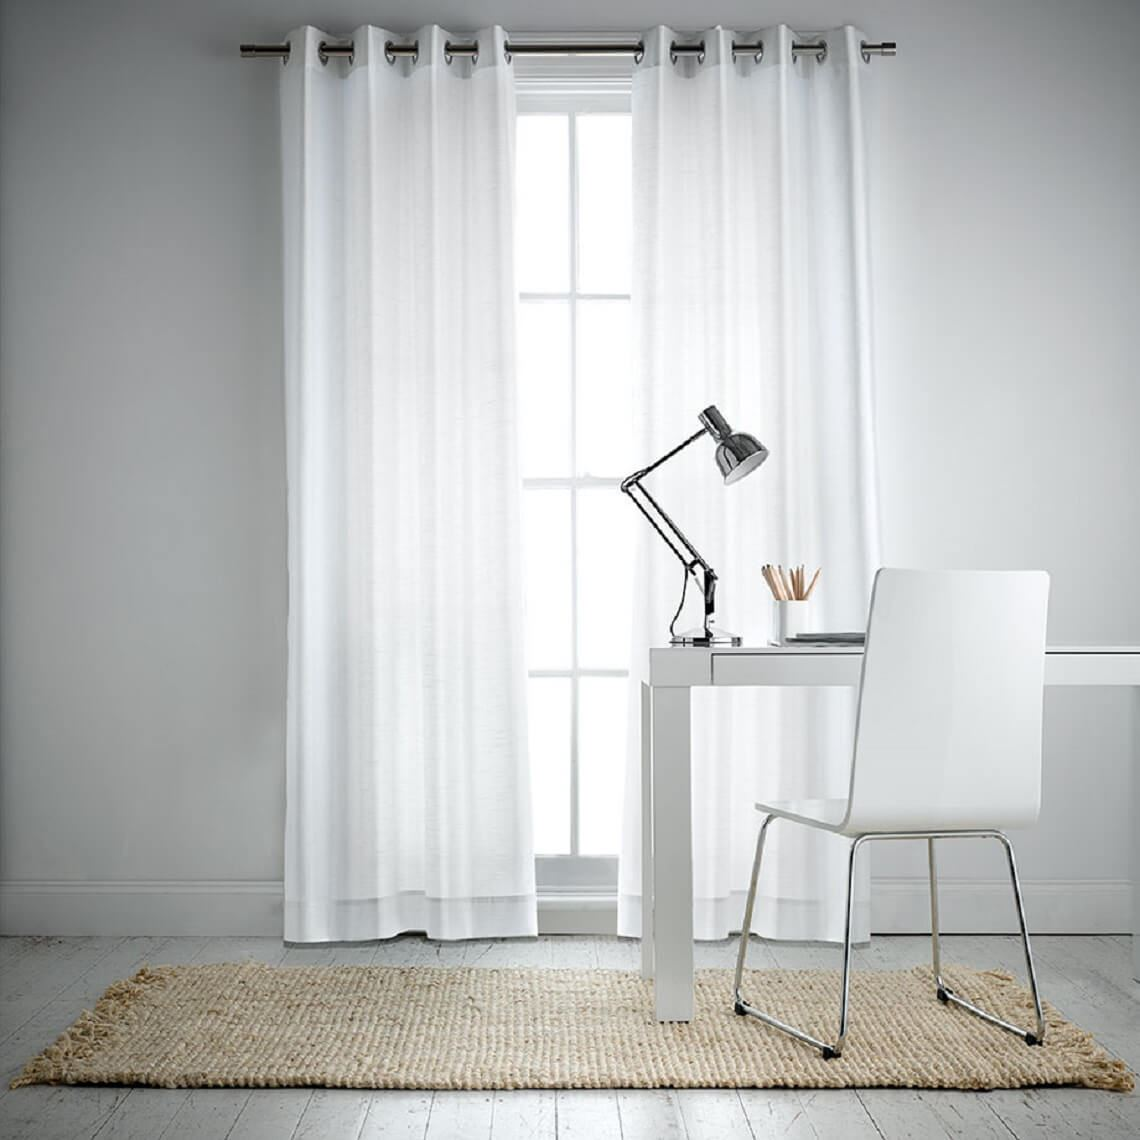 Aberdeen Lightfilter Eyelet Curtain Size W 140cm x D 5cm x H 230cm in White 100% Polyester/Acrylic Flock Coating/Stainless Steel Freedom by Freedom, a Curtains for sale on Style Sourcebook